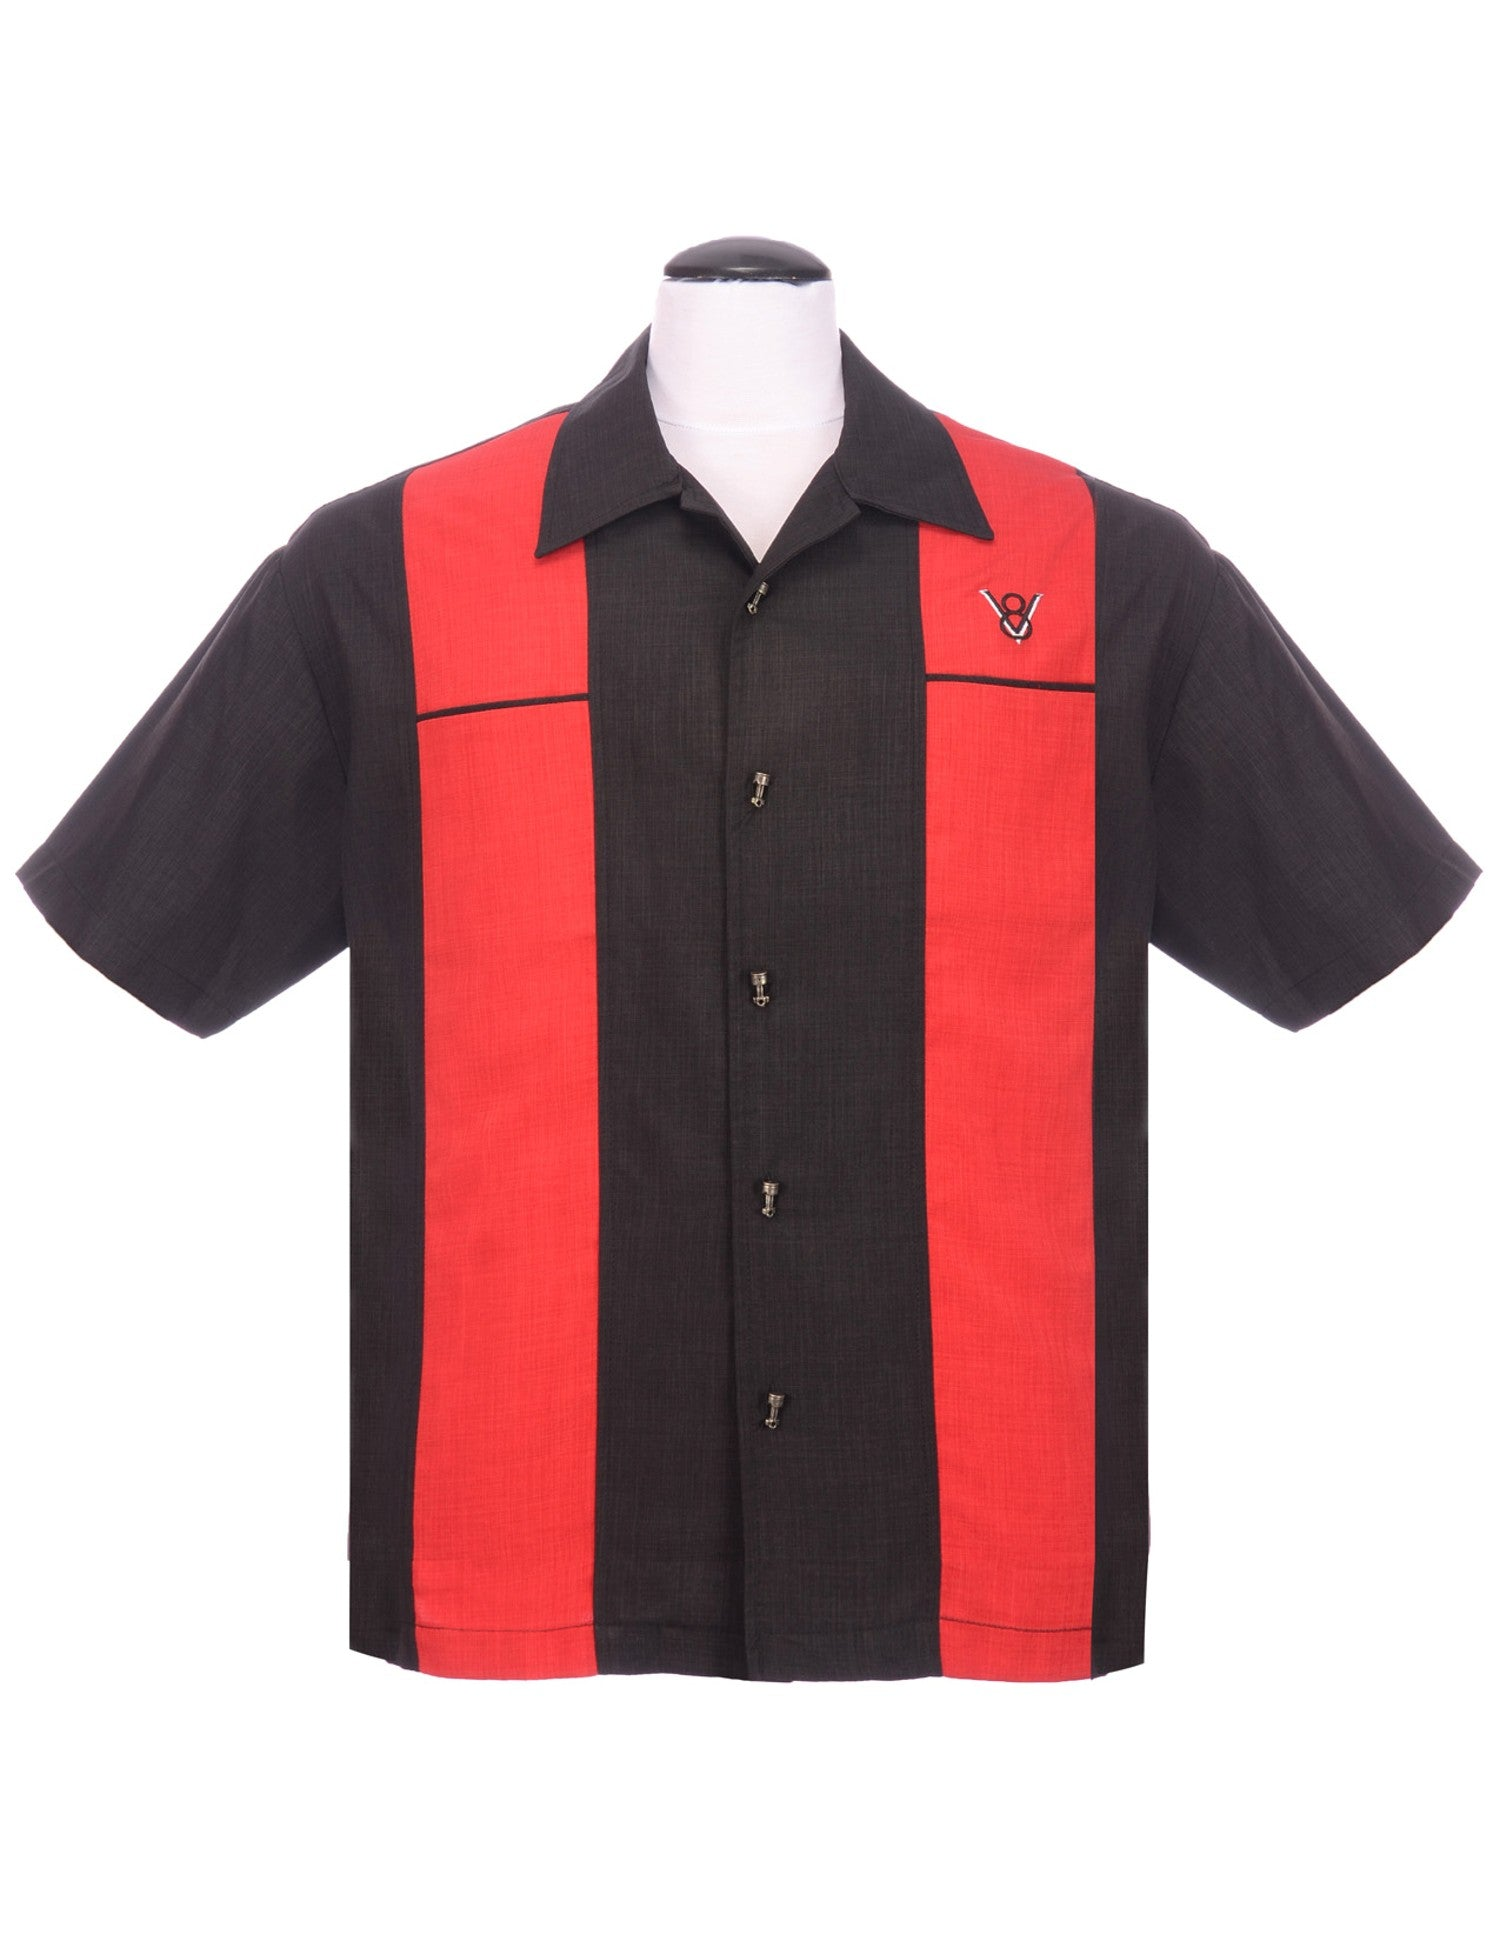 Steady Classy Piston Button Up in Black Red Double Panel V8 symbol Car Lovers - Cool Hot Fashions